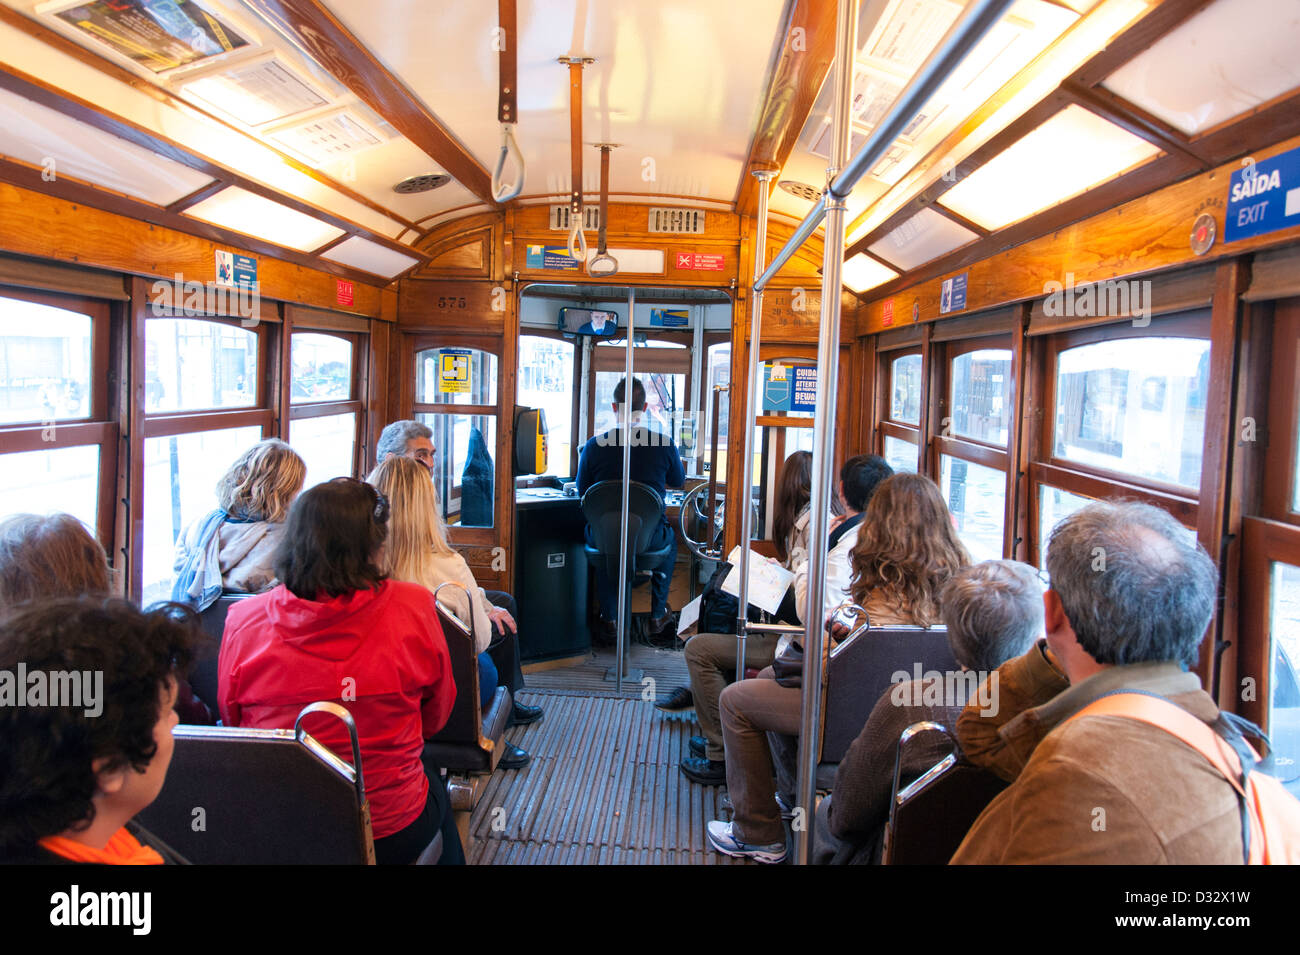 People riding a tram, Lisbon, Portugal - Stock Image